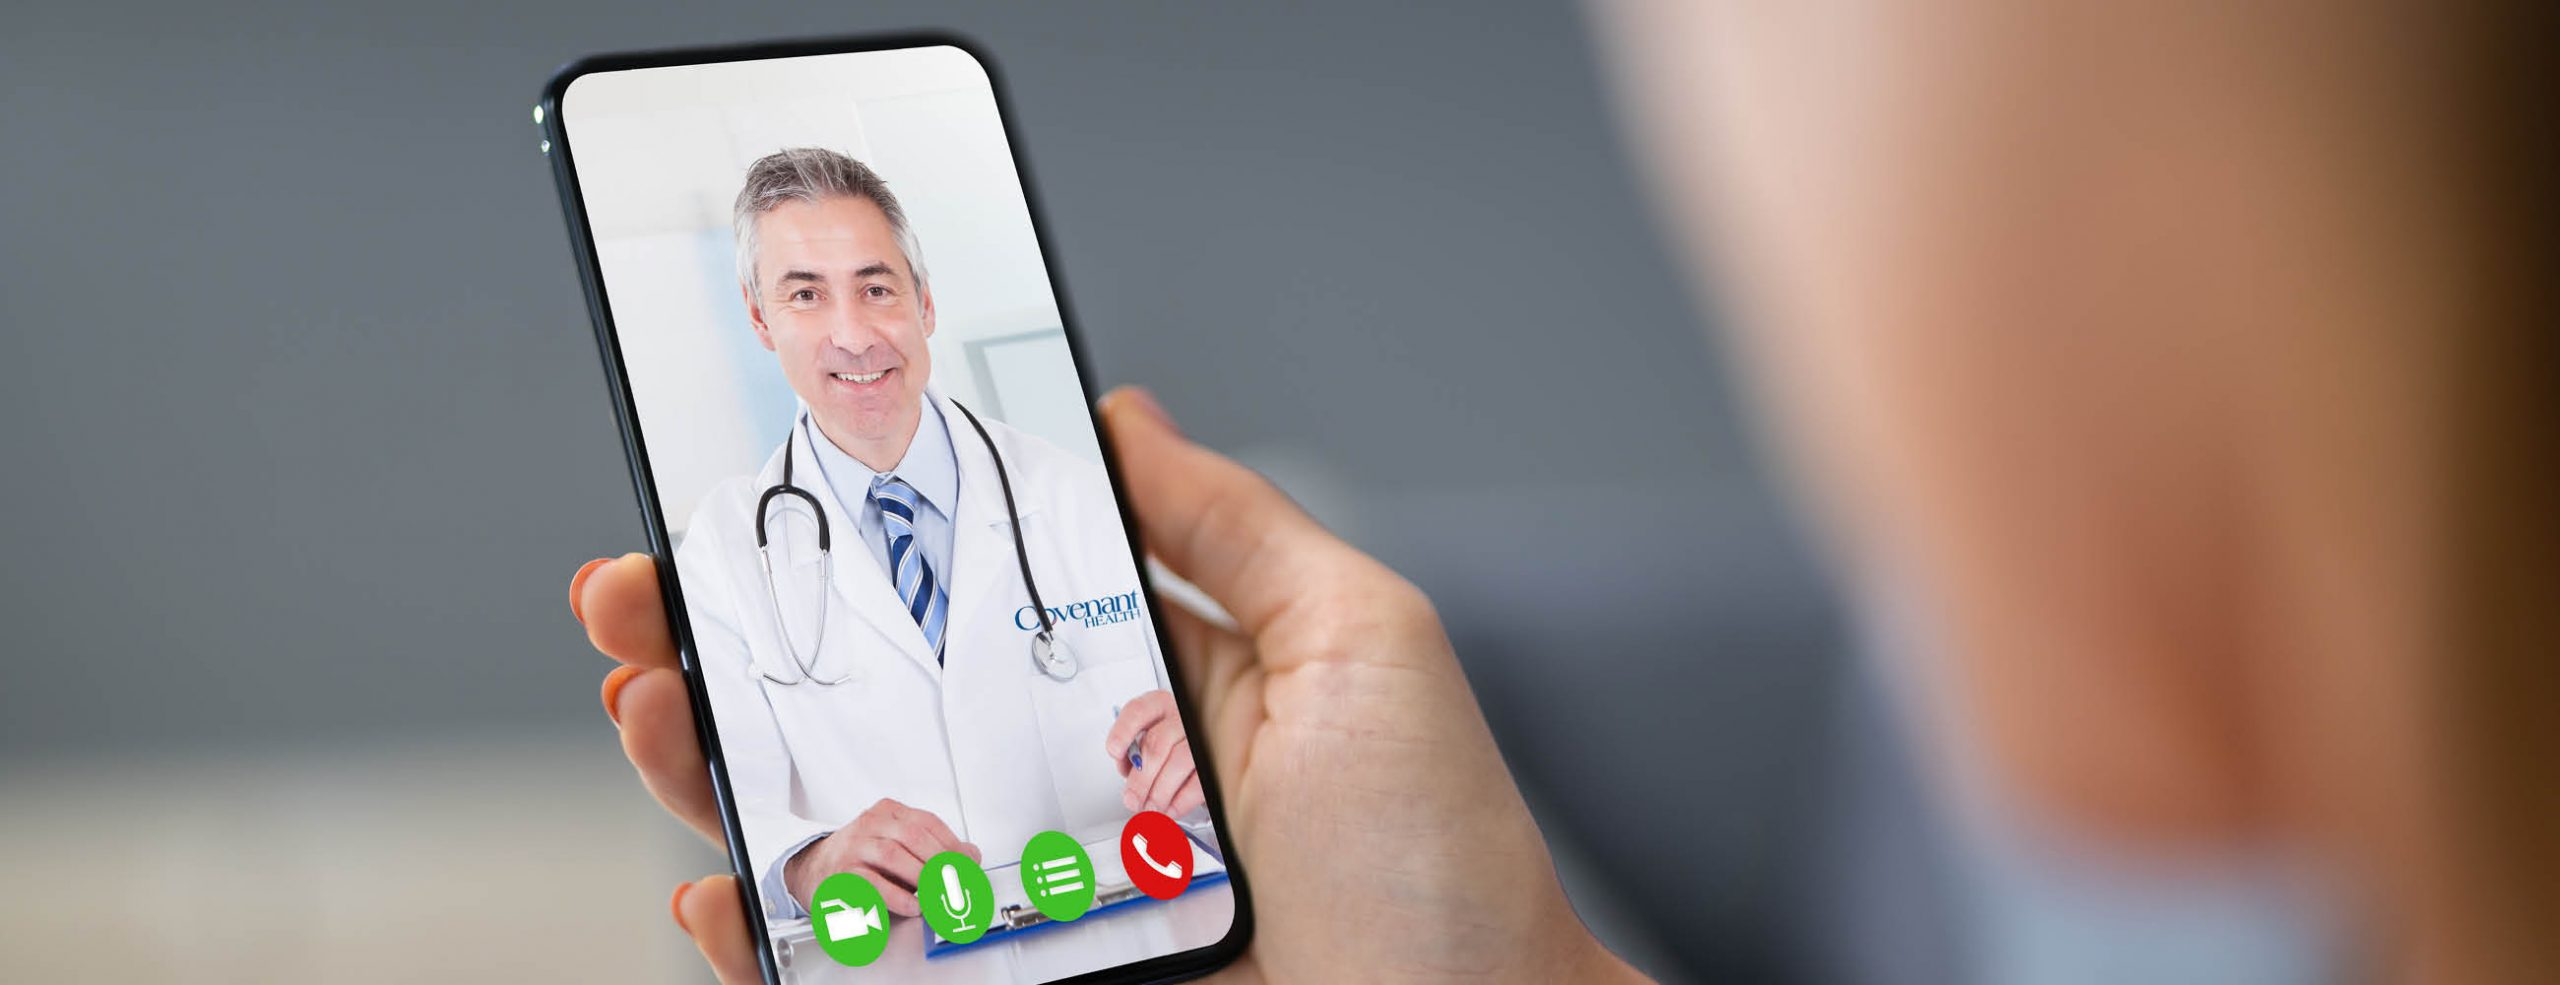 Telehealth Visits Available During COVID-19